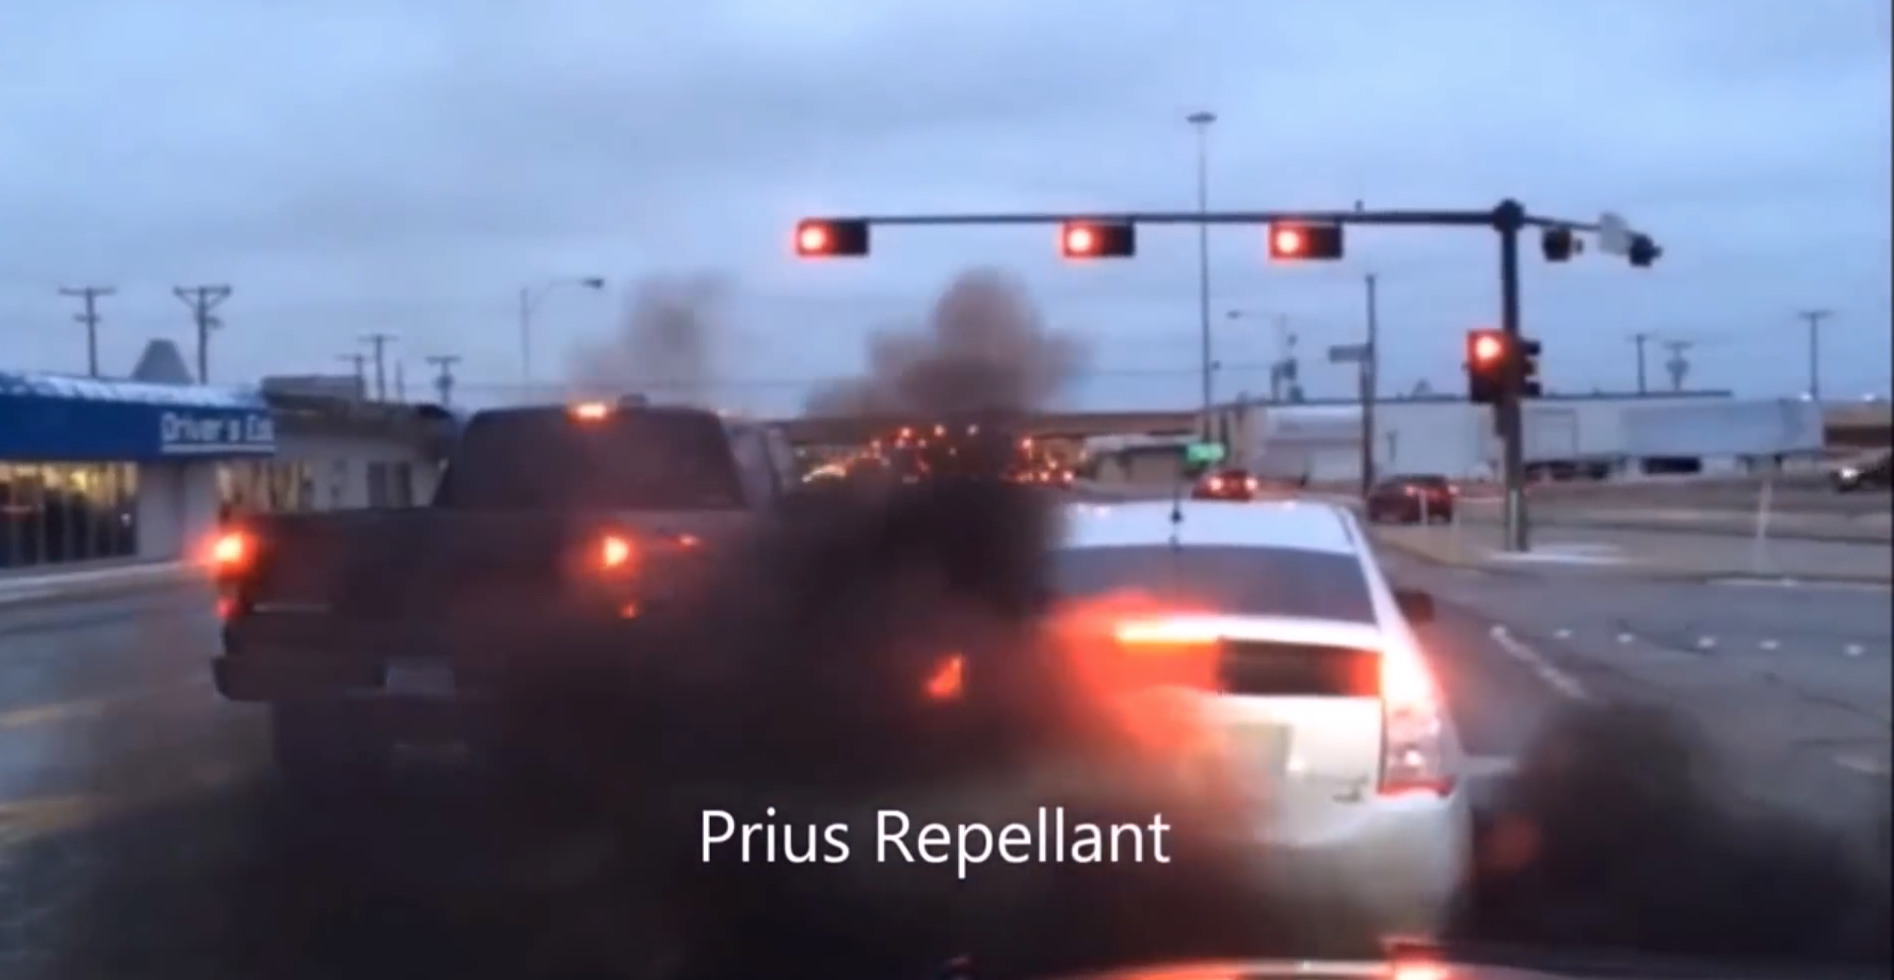 Epa Looking To Stop Rolling Coal With Fine Video